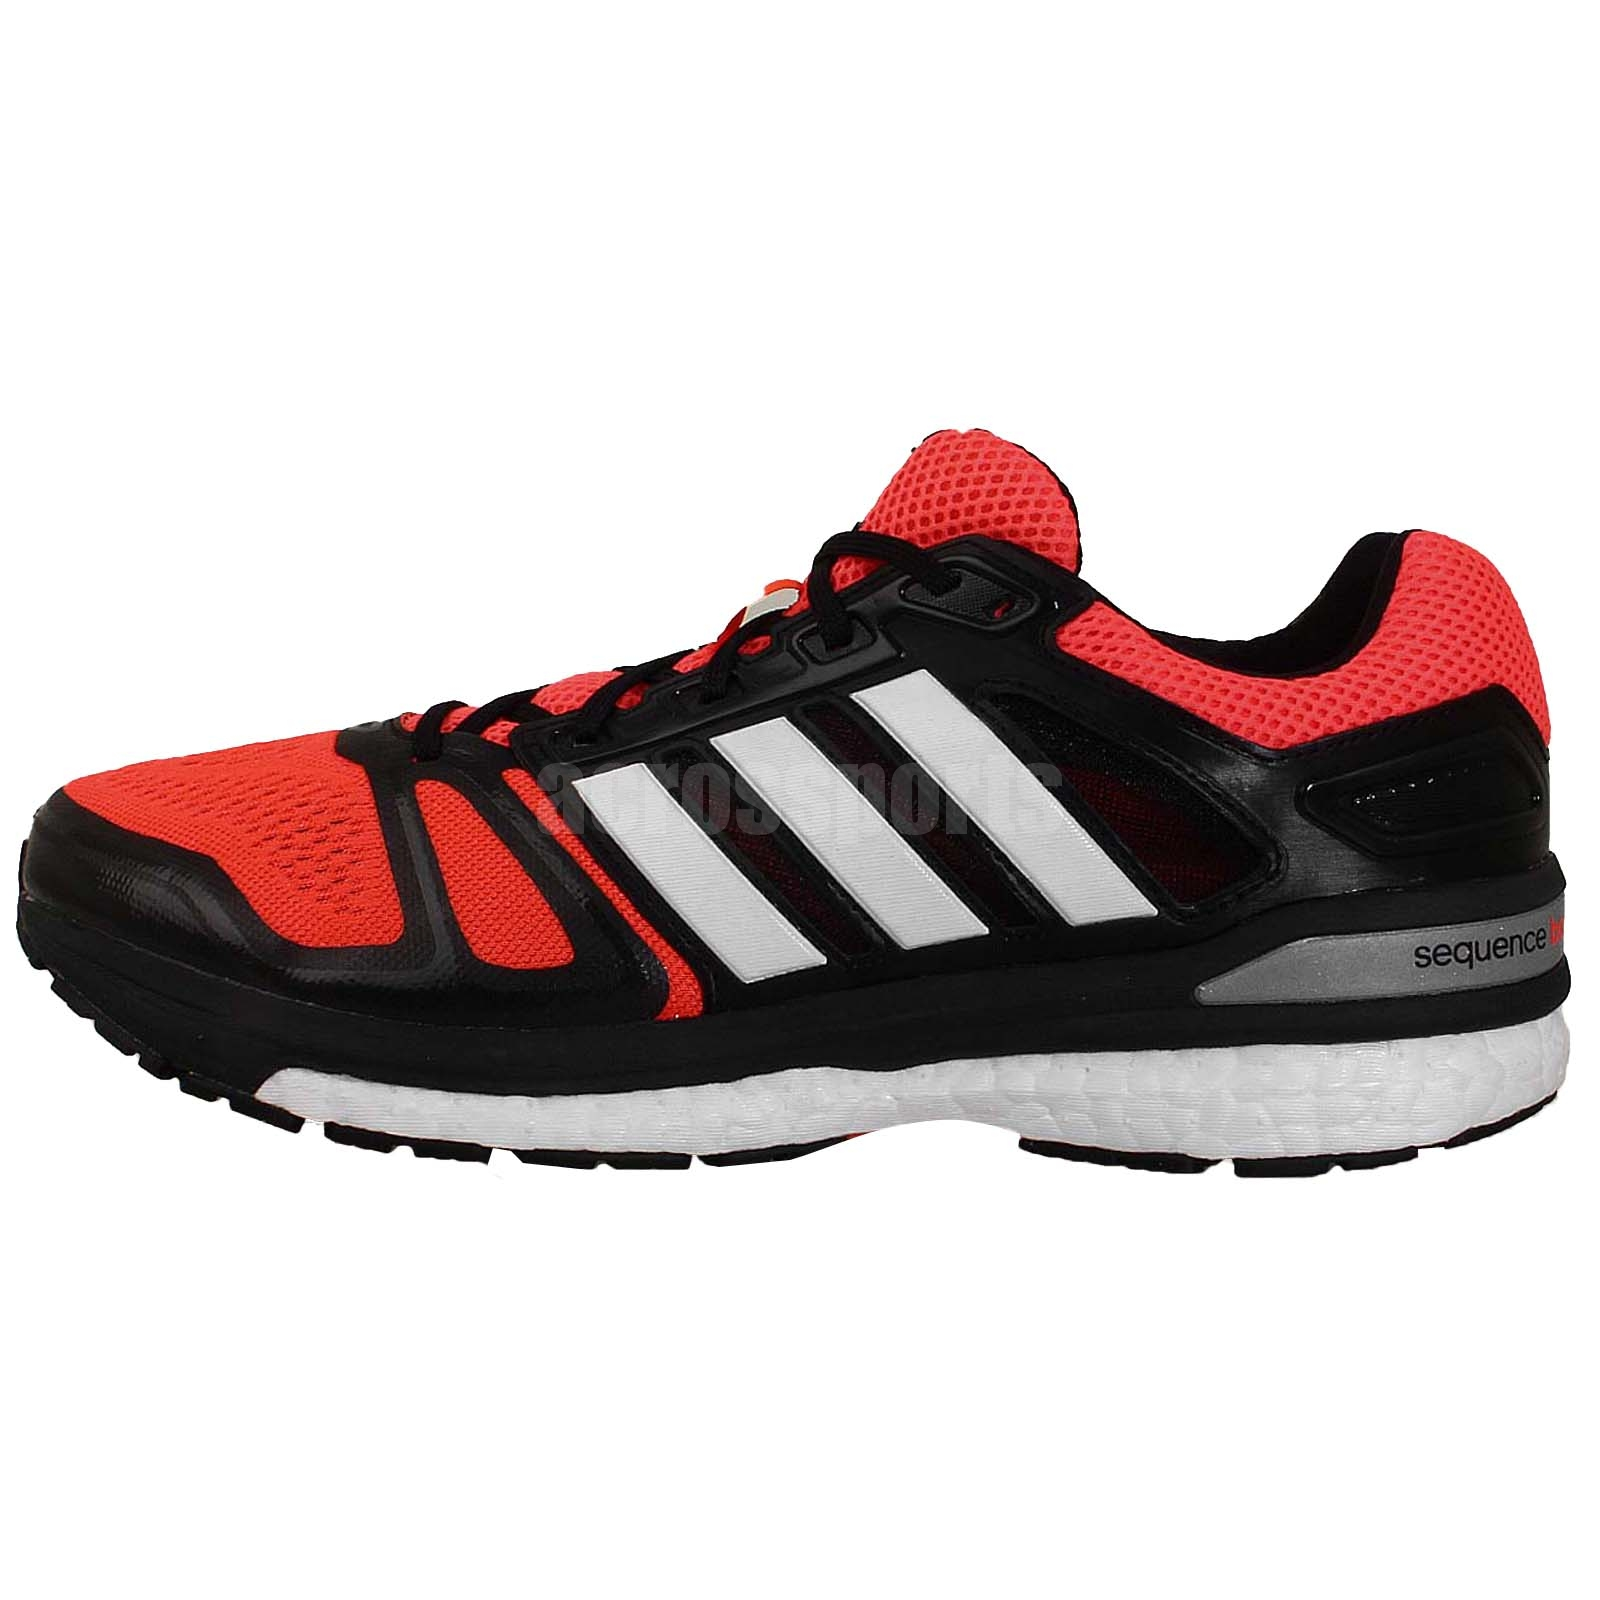 adidas supernova sequence 7 m boost red black white mens. Black Bedroom Furniture Sets. Home Design Ideas